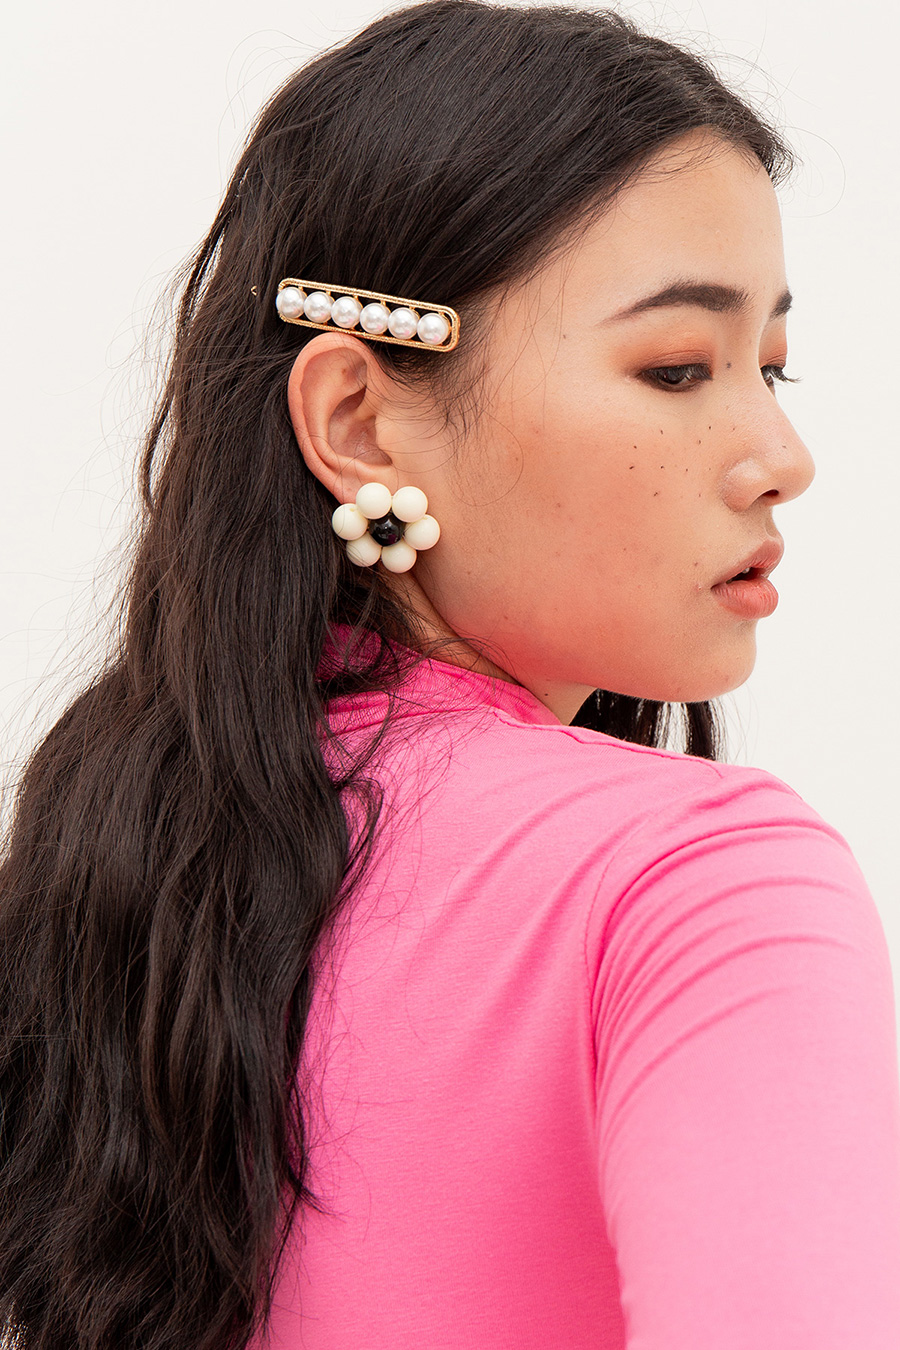 *RESTOCKED* PAULETTE HAIRCLIP - GOLD